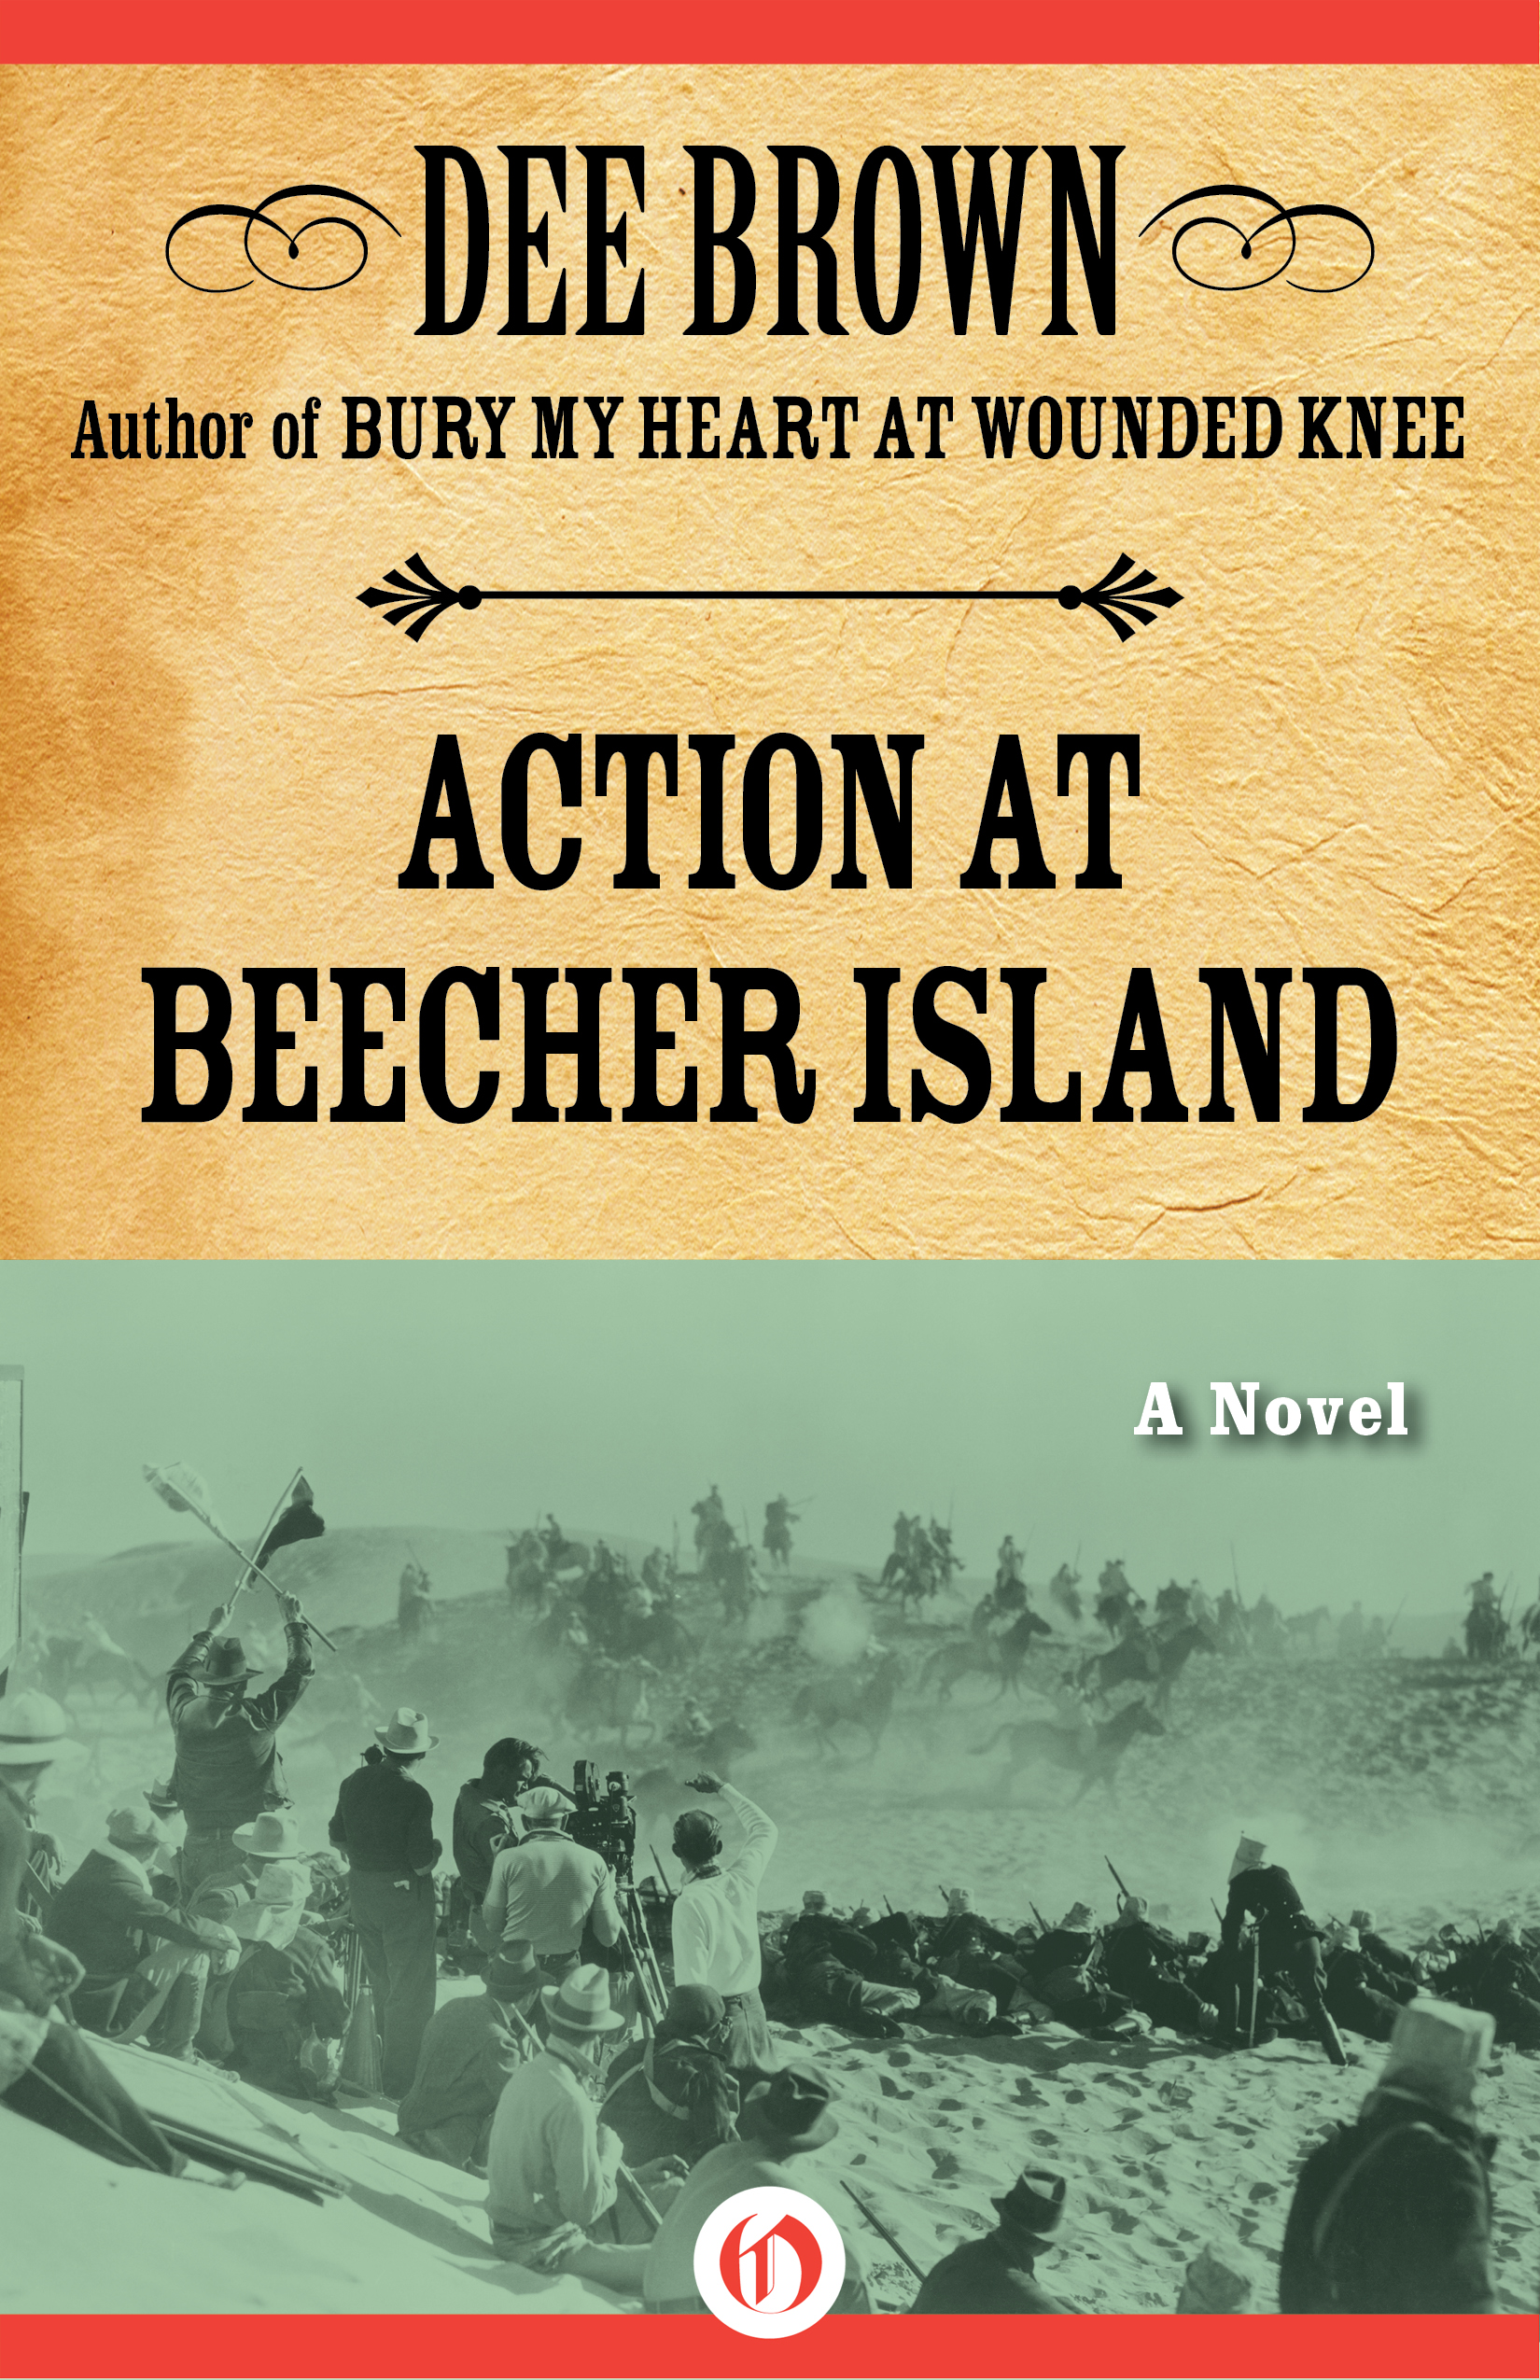 Action at Beecher Island: A Novel By: Dee Brown